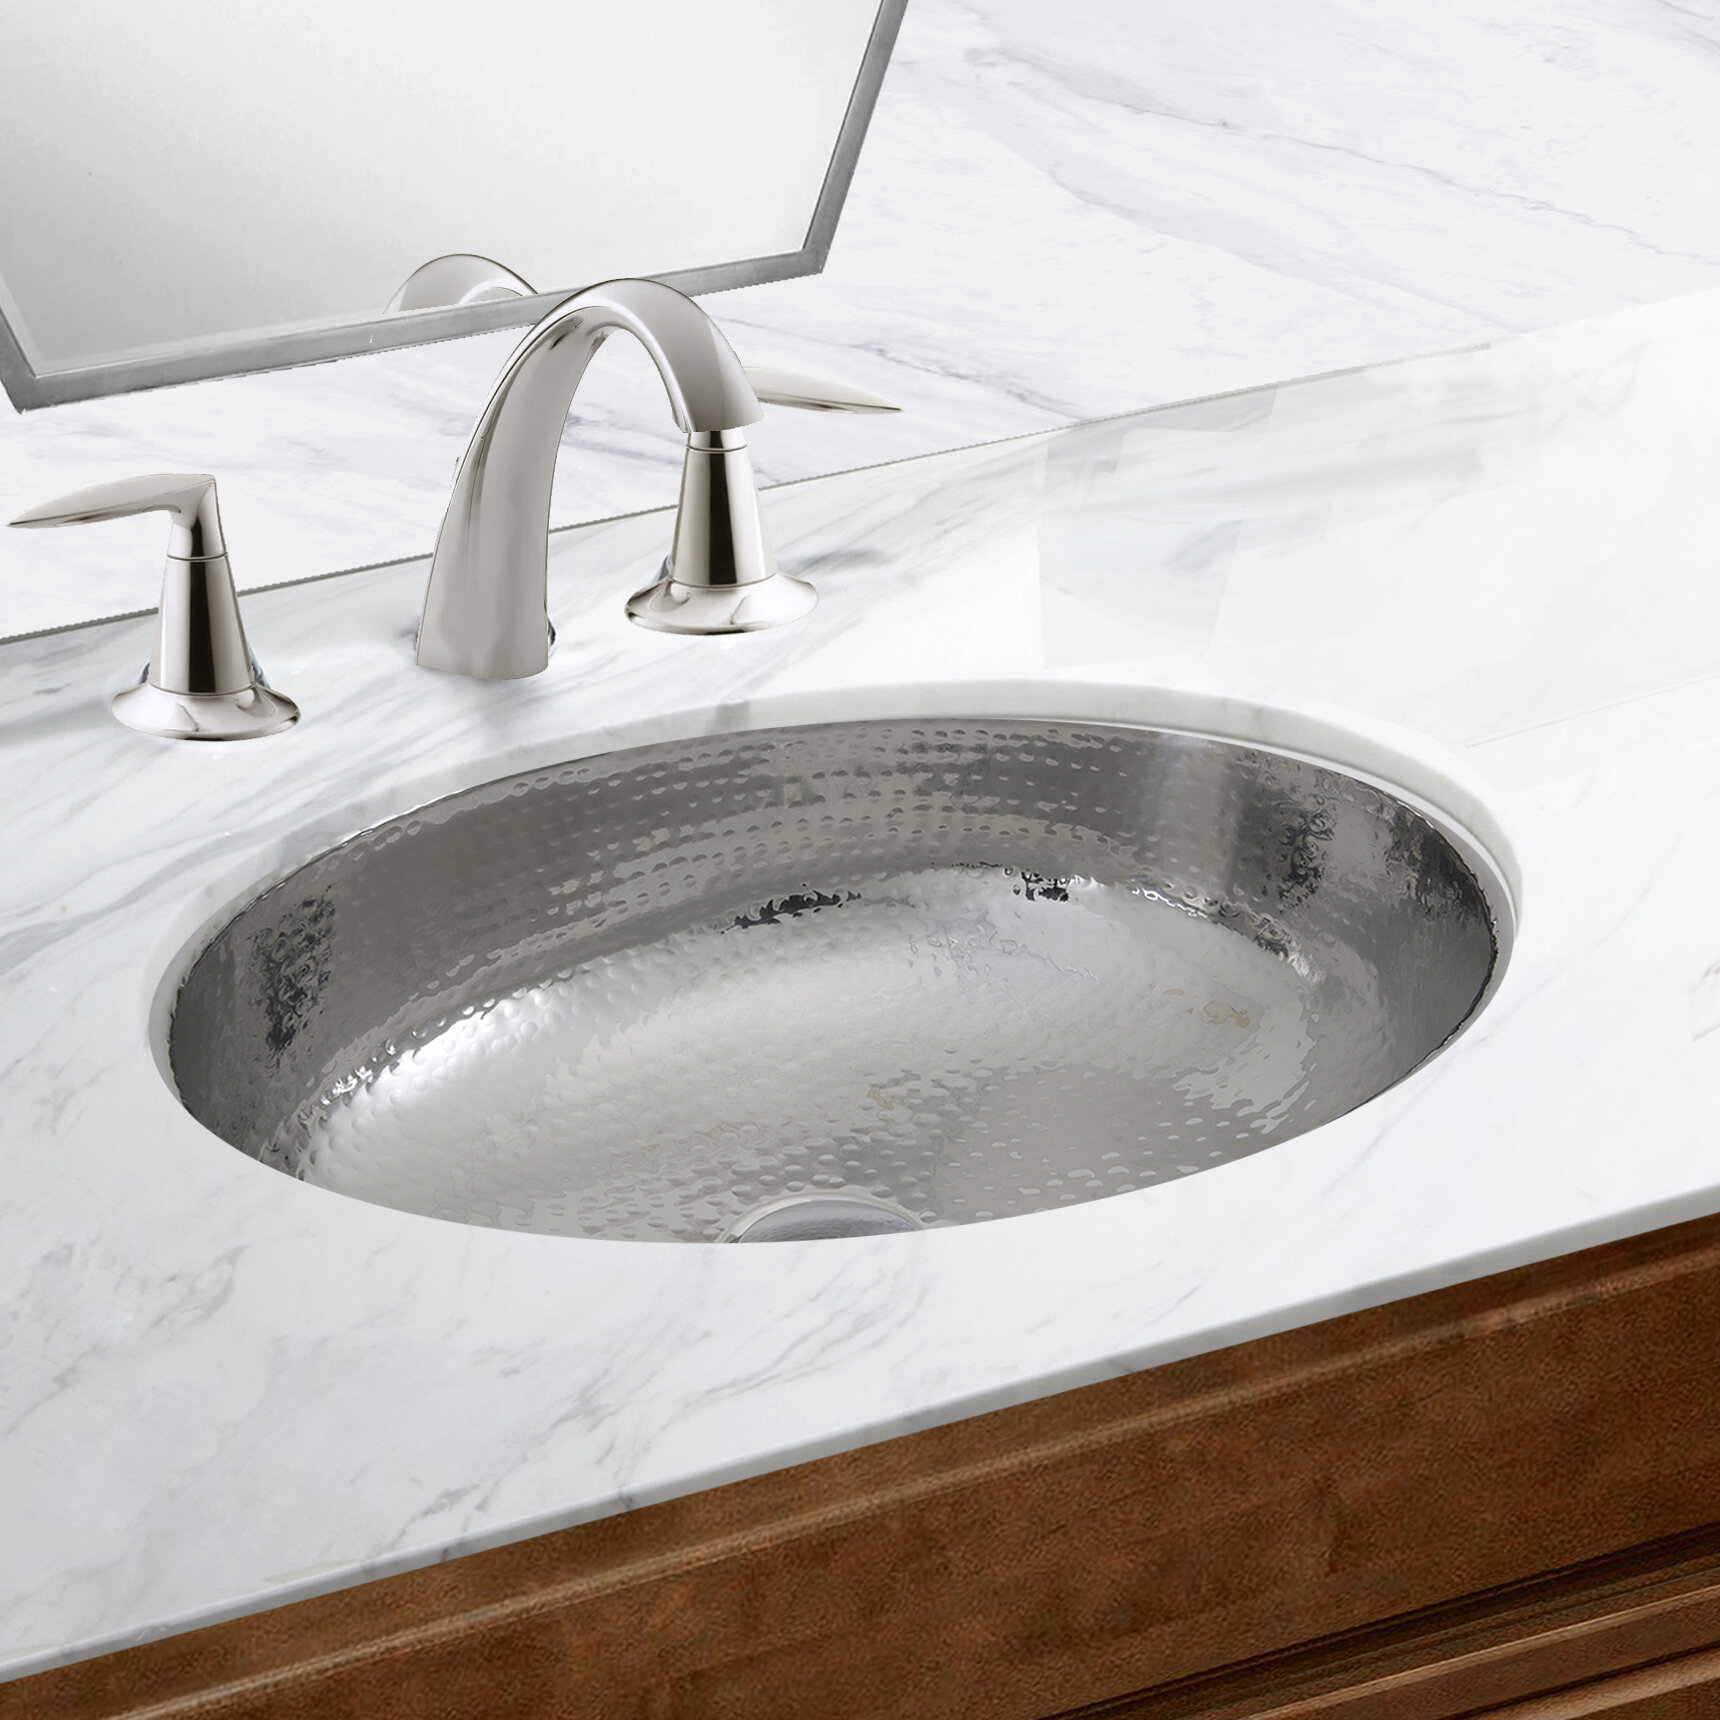 Details About Hand Hammered Stainless Steel Oval Undermount Bathroom Sink With Overflow